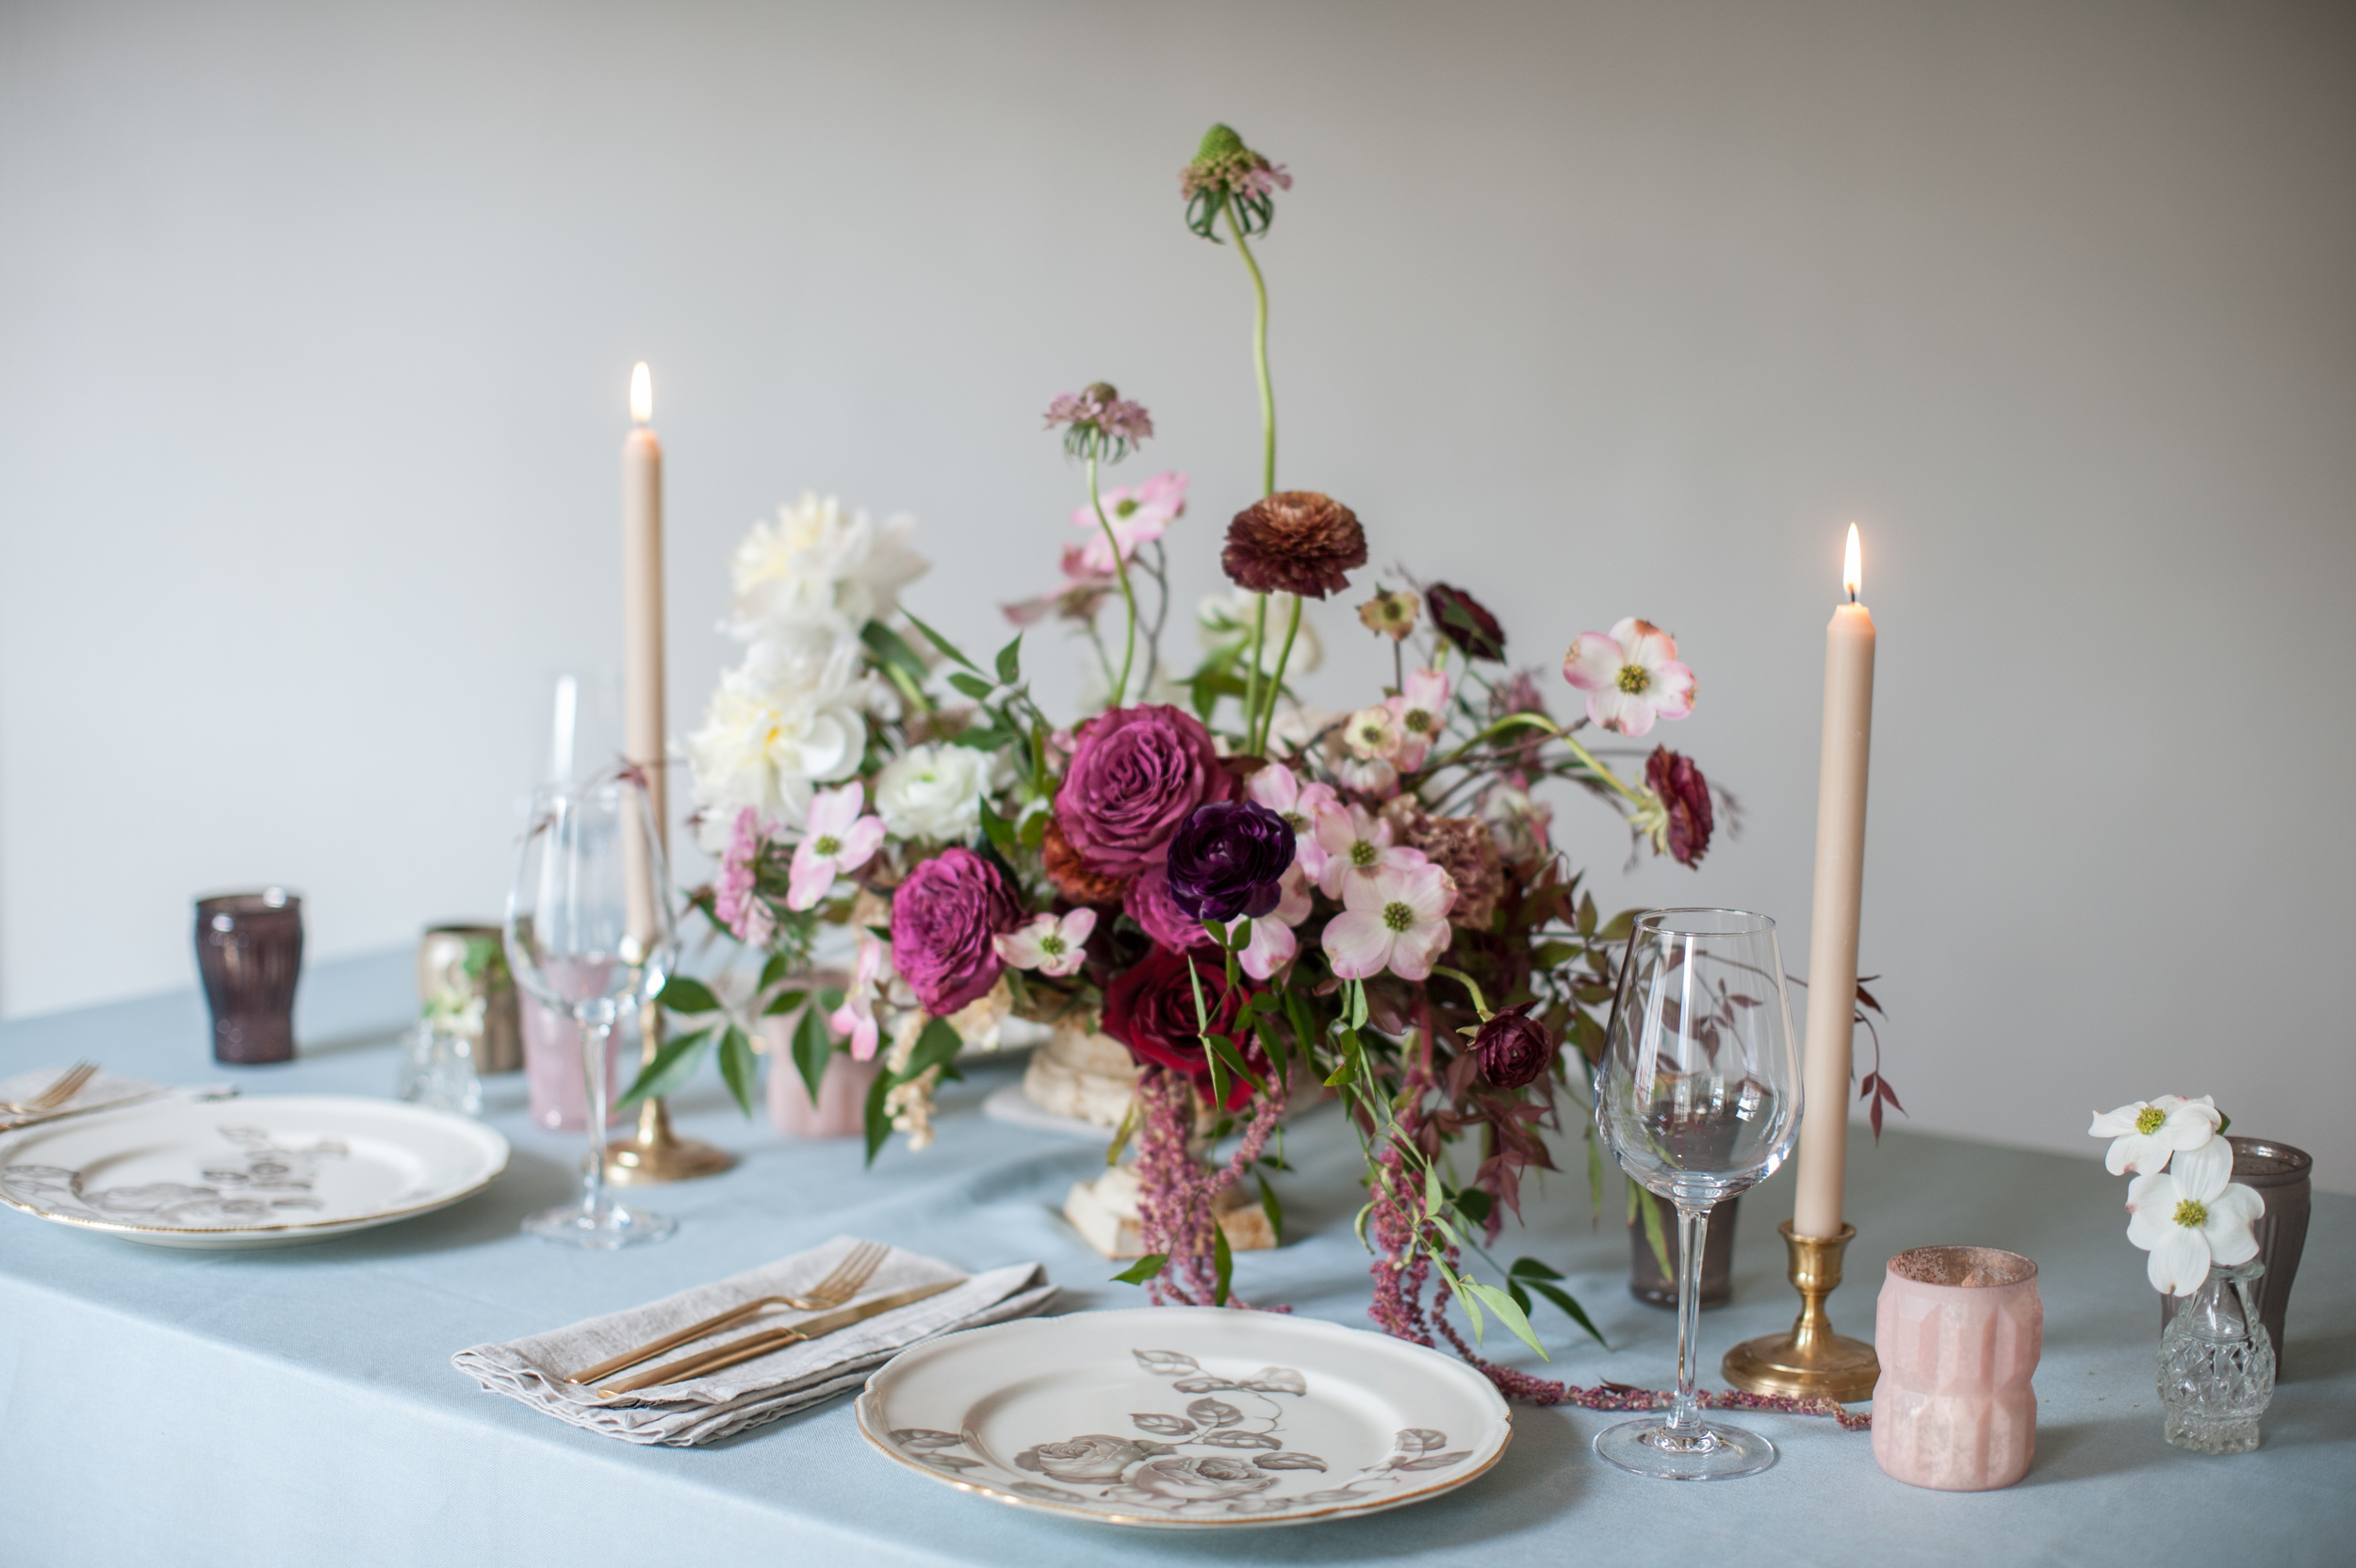 handley breaux designs | floral tastemaker | holly carlisle | antiques at the gardens